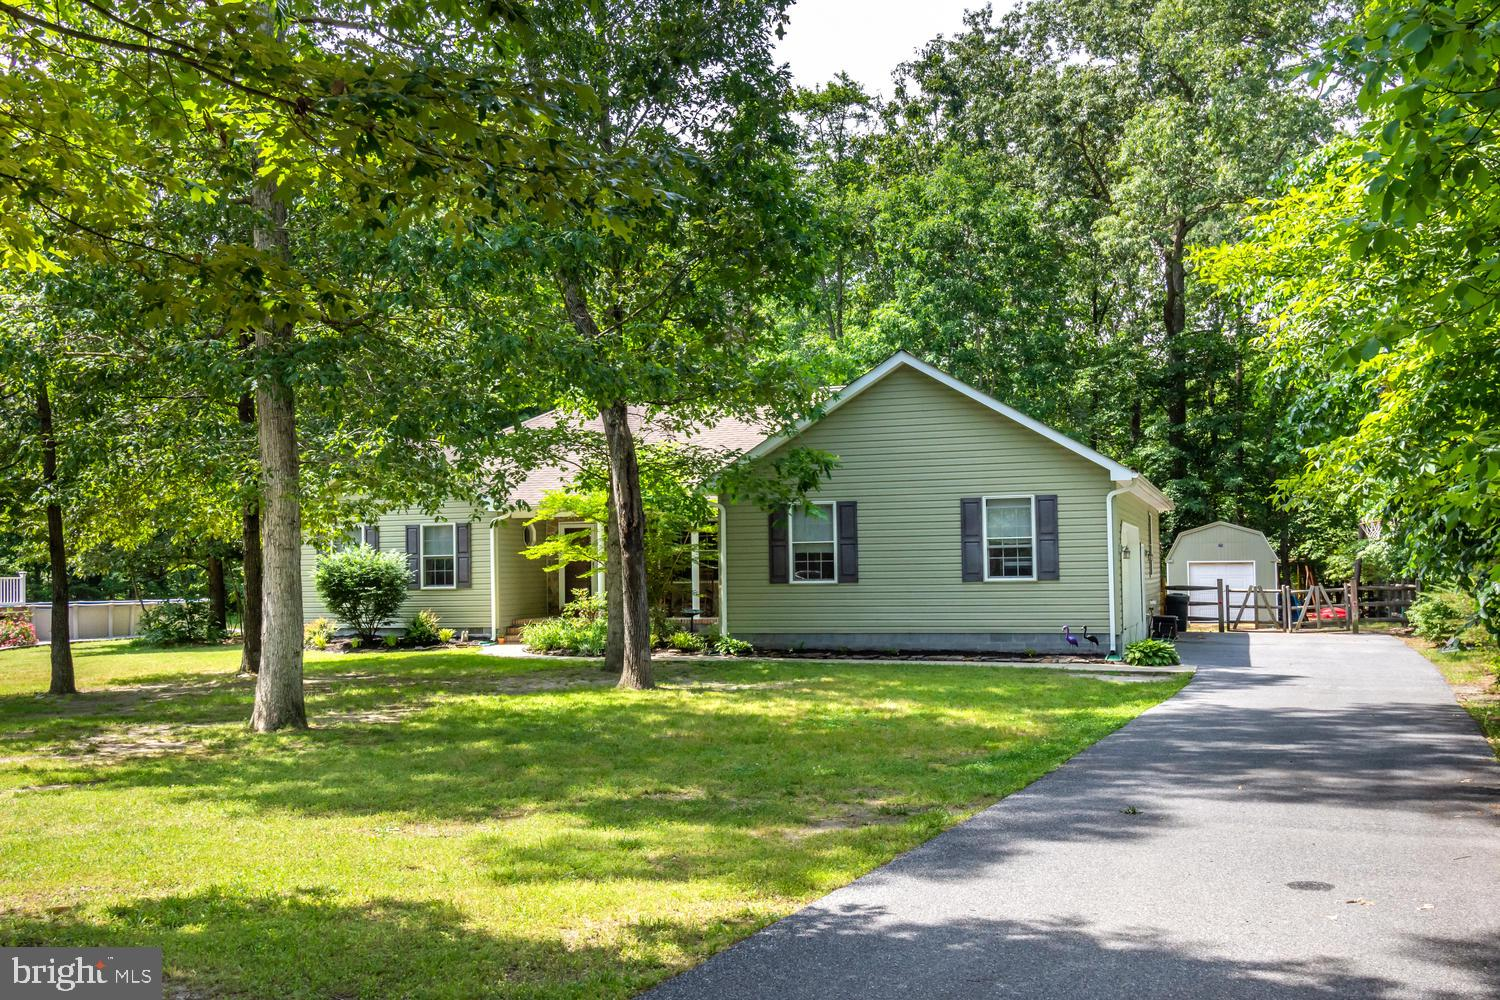 26028 HOLLY LANE, GREENSBORO, MD 21639